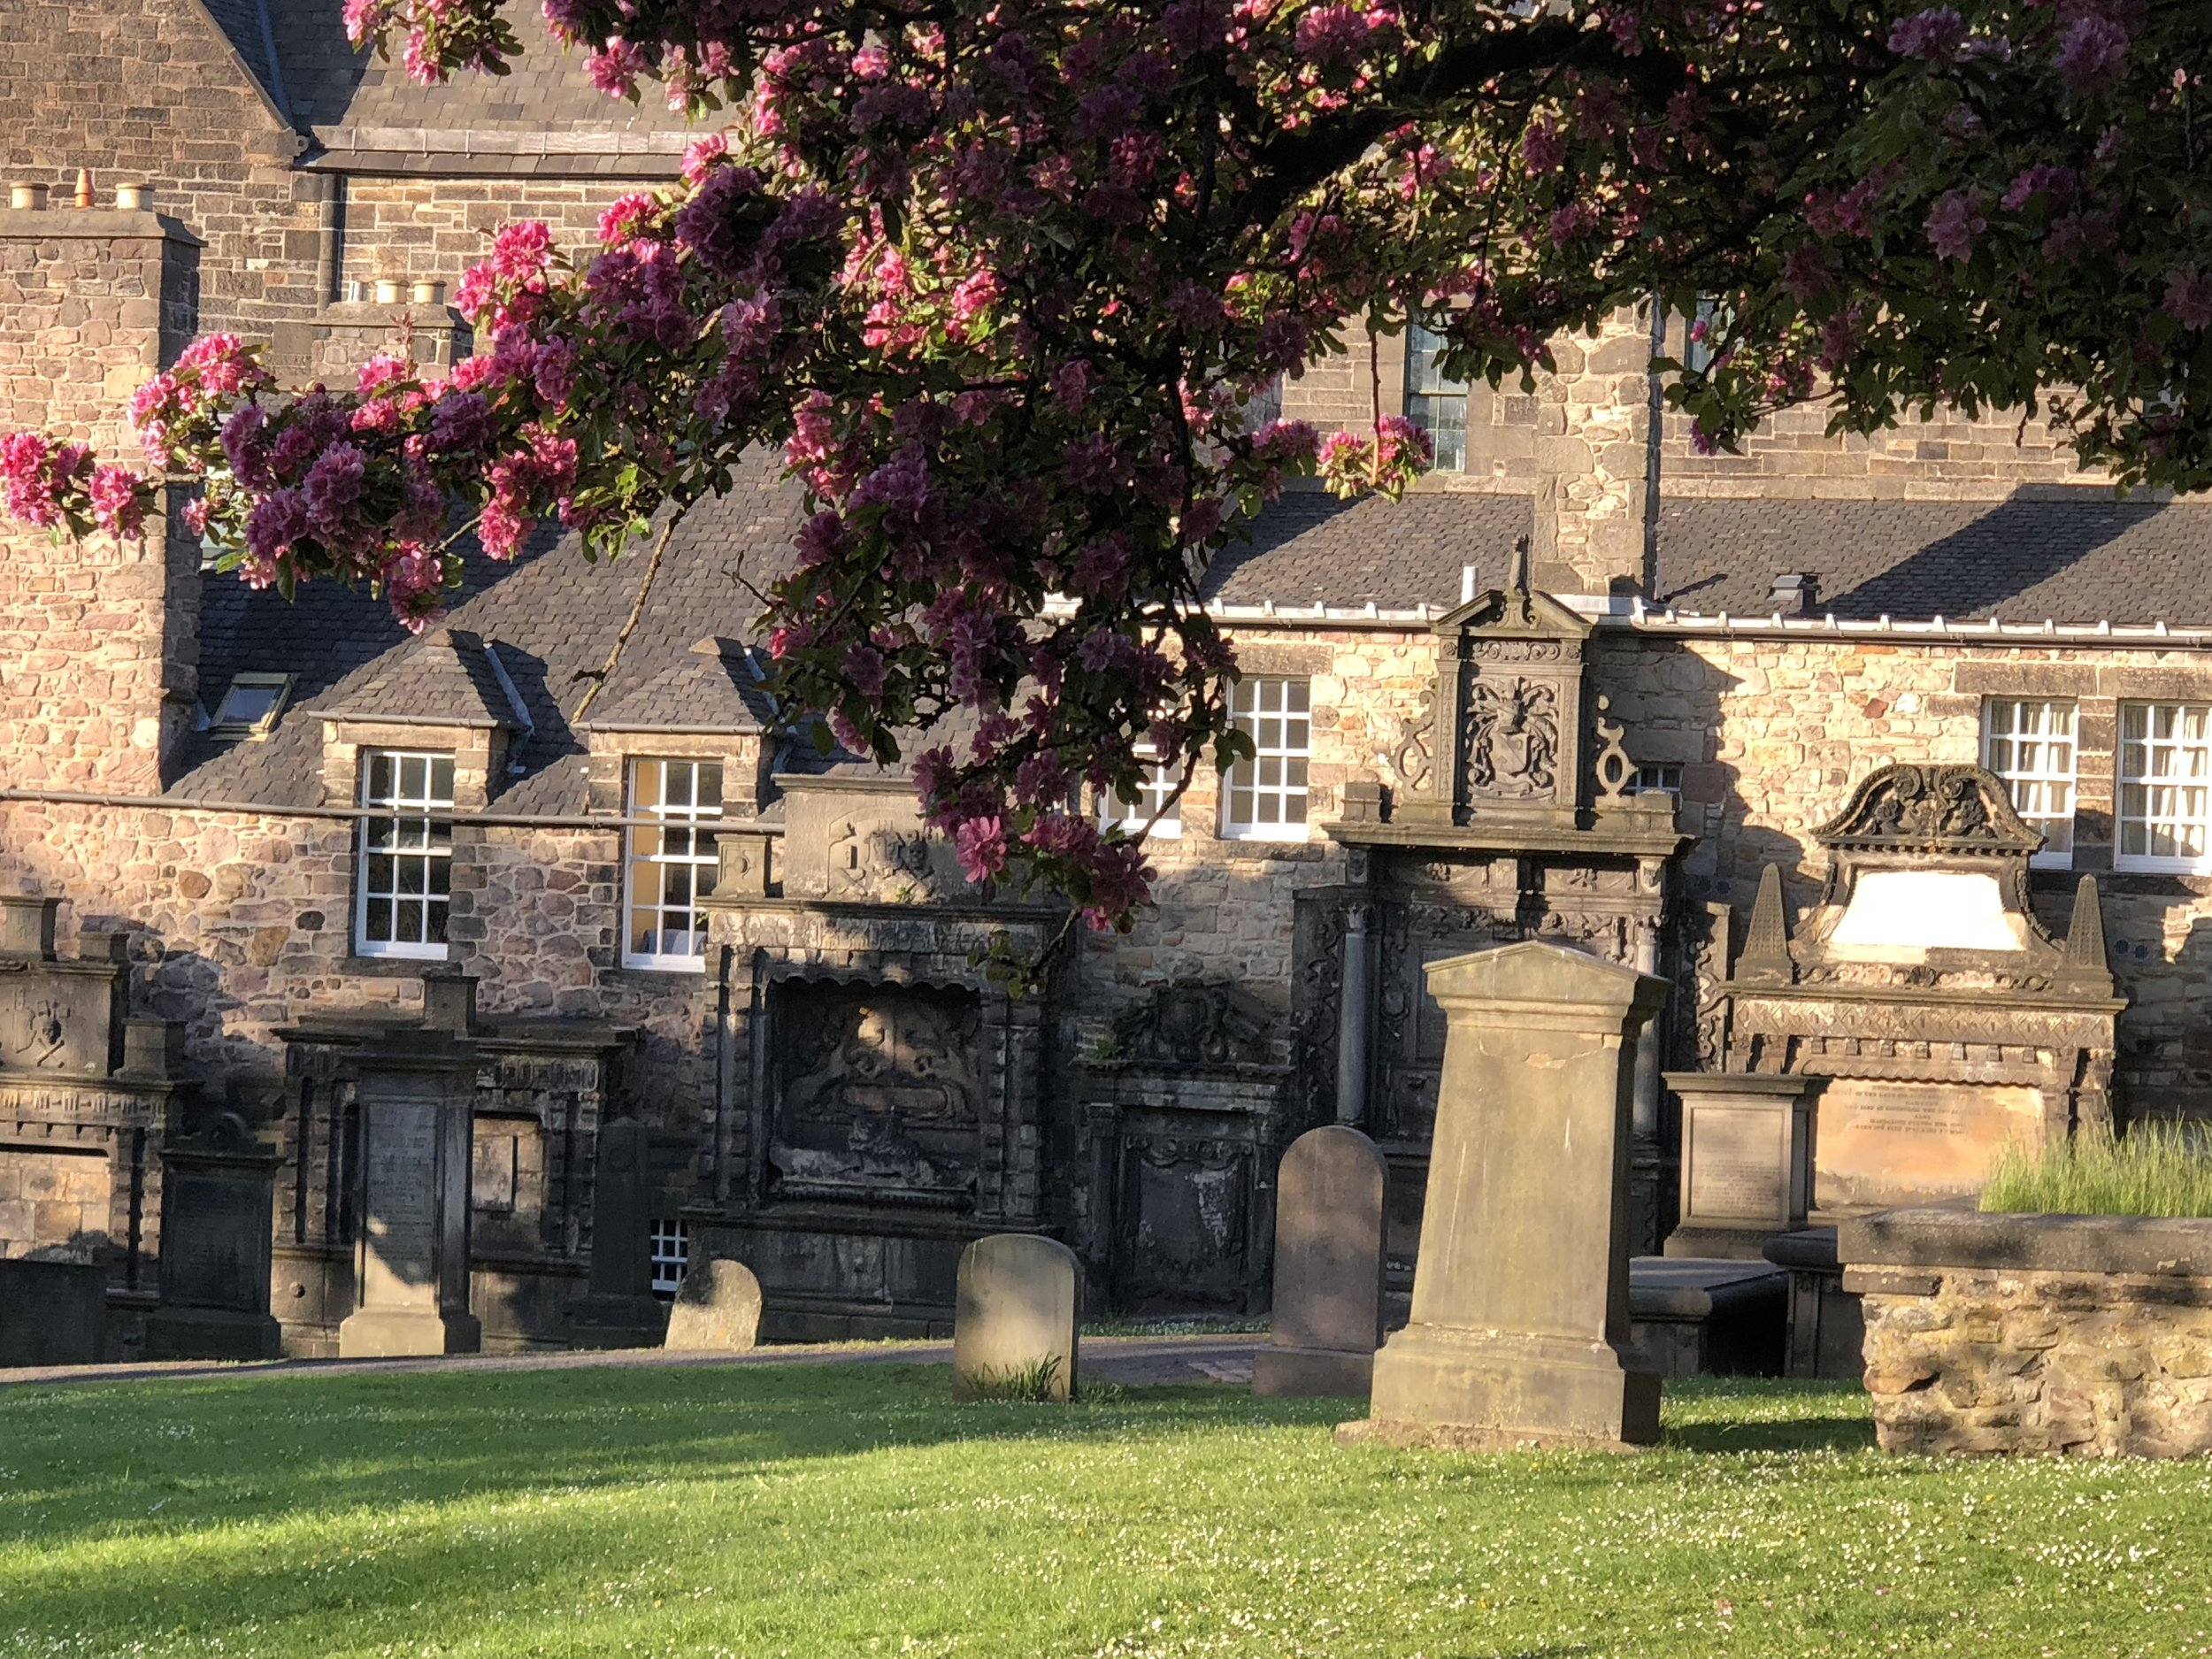 The Greyfriers Cemetery